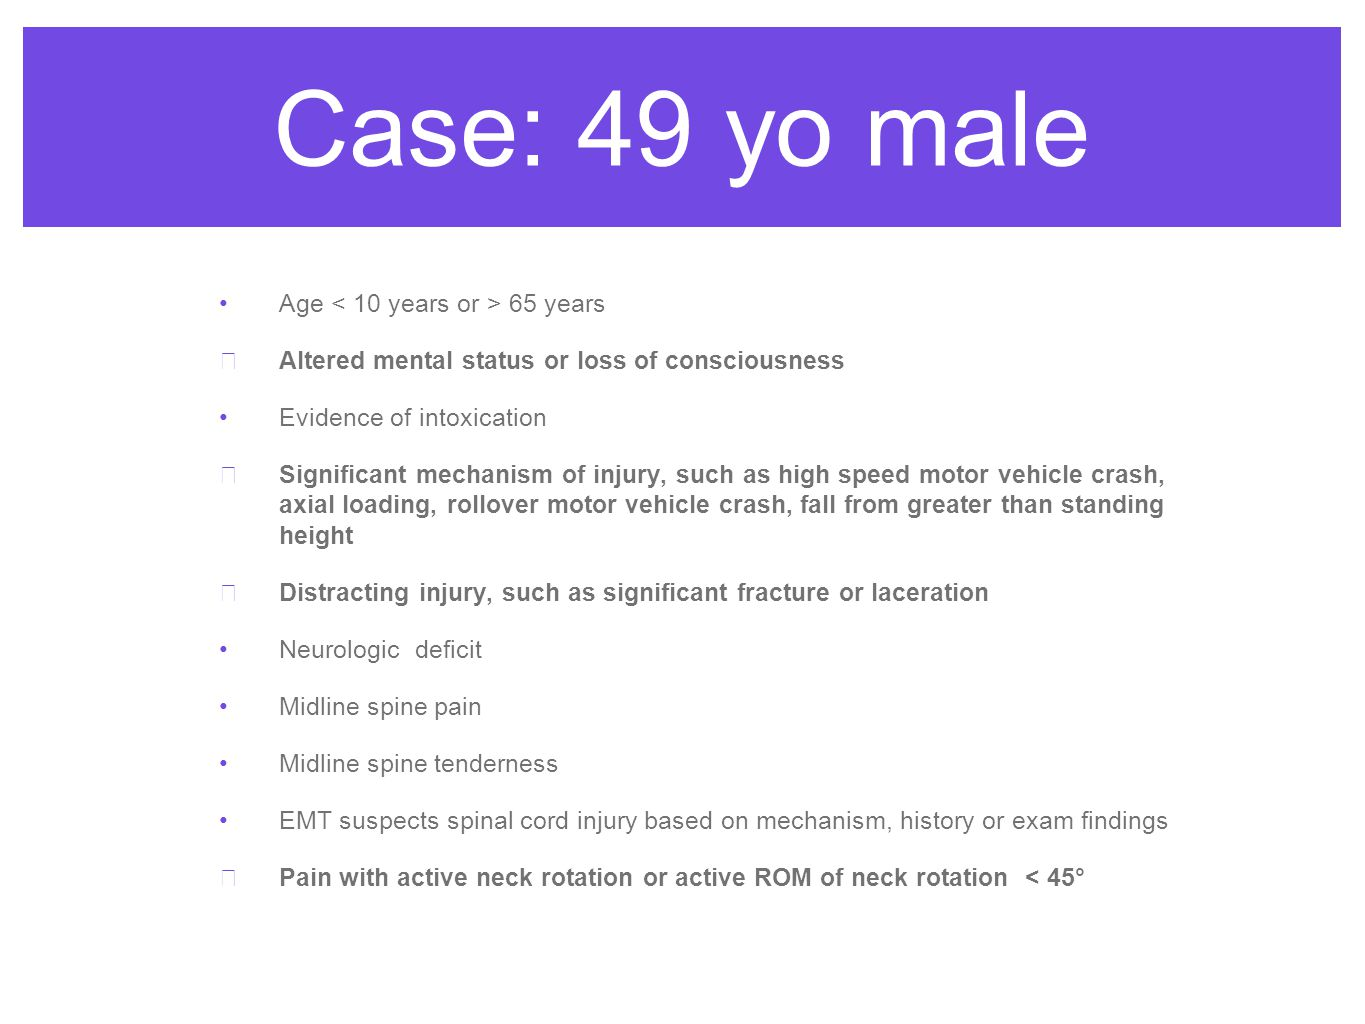 Case: 49 yo male Age < 10 years or > 65 years